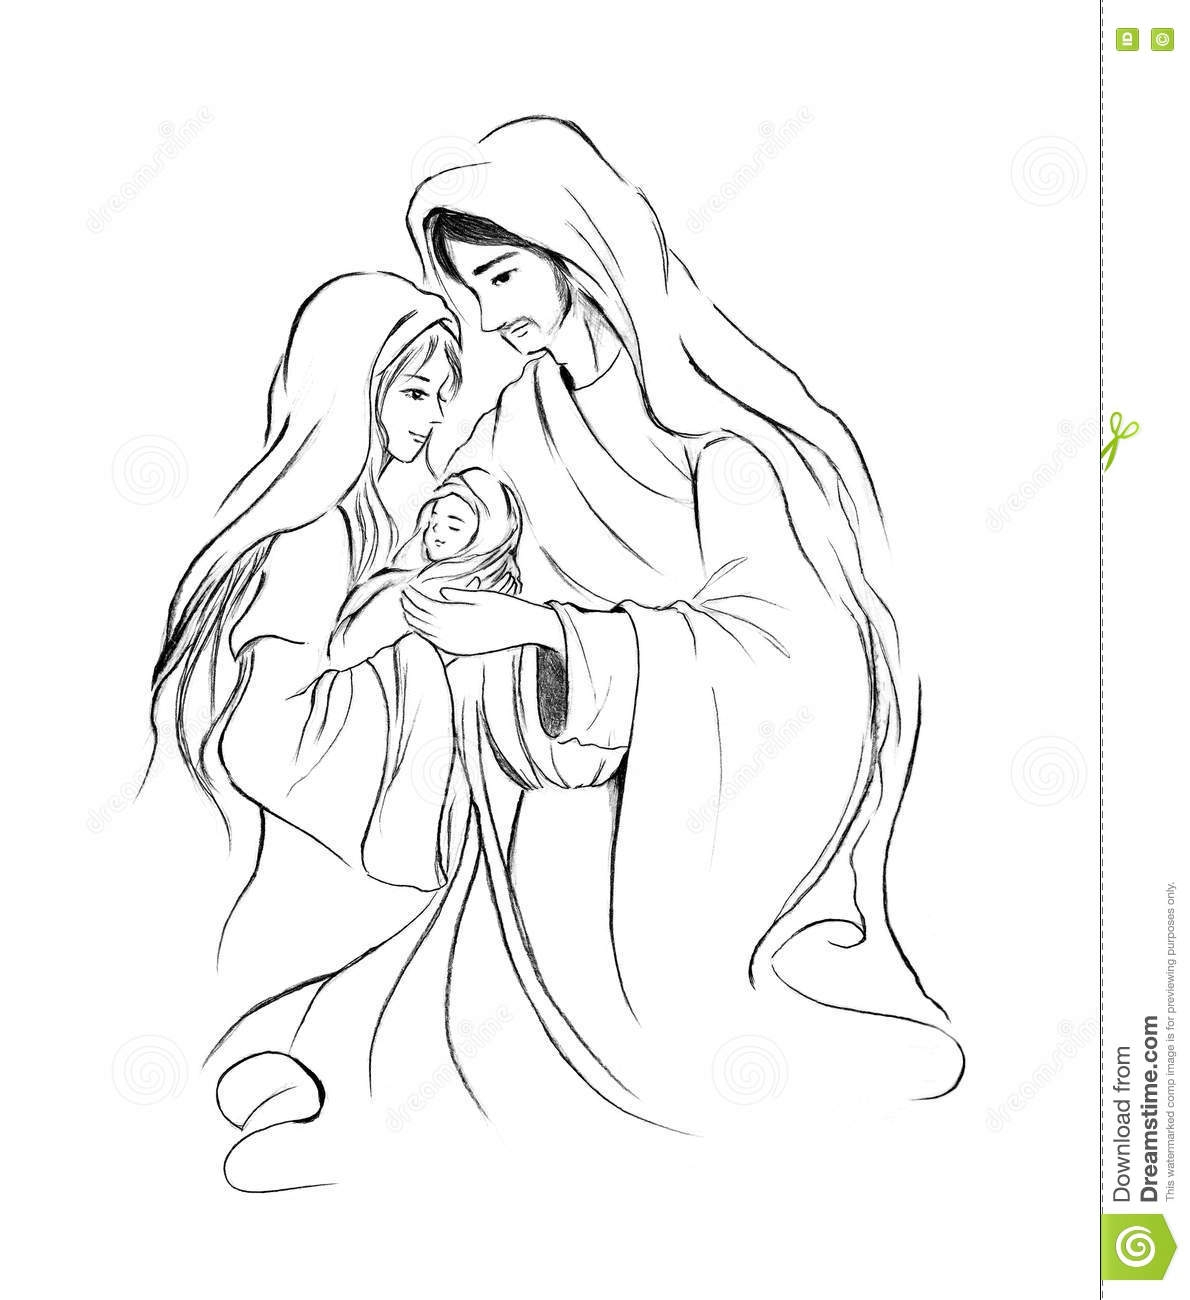 jesus calms the storm coloring page - stock illustration baby jesus mary joseph abstract line art drawing white background christmas holiday season xmas artwork image